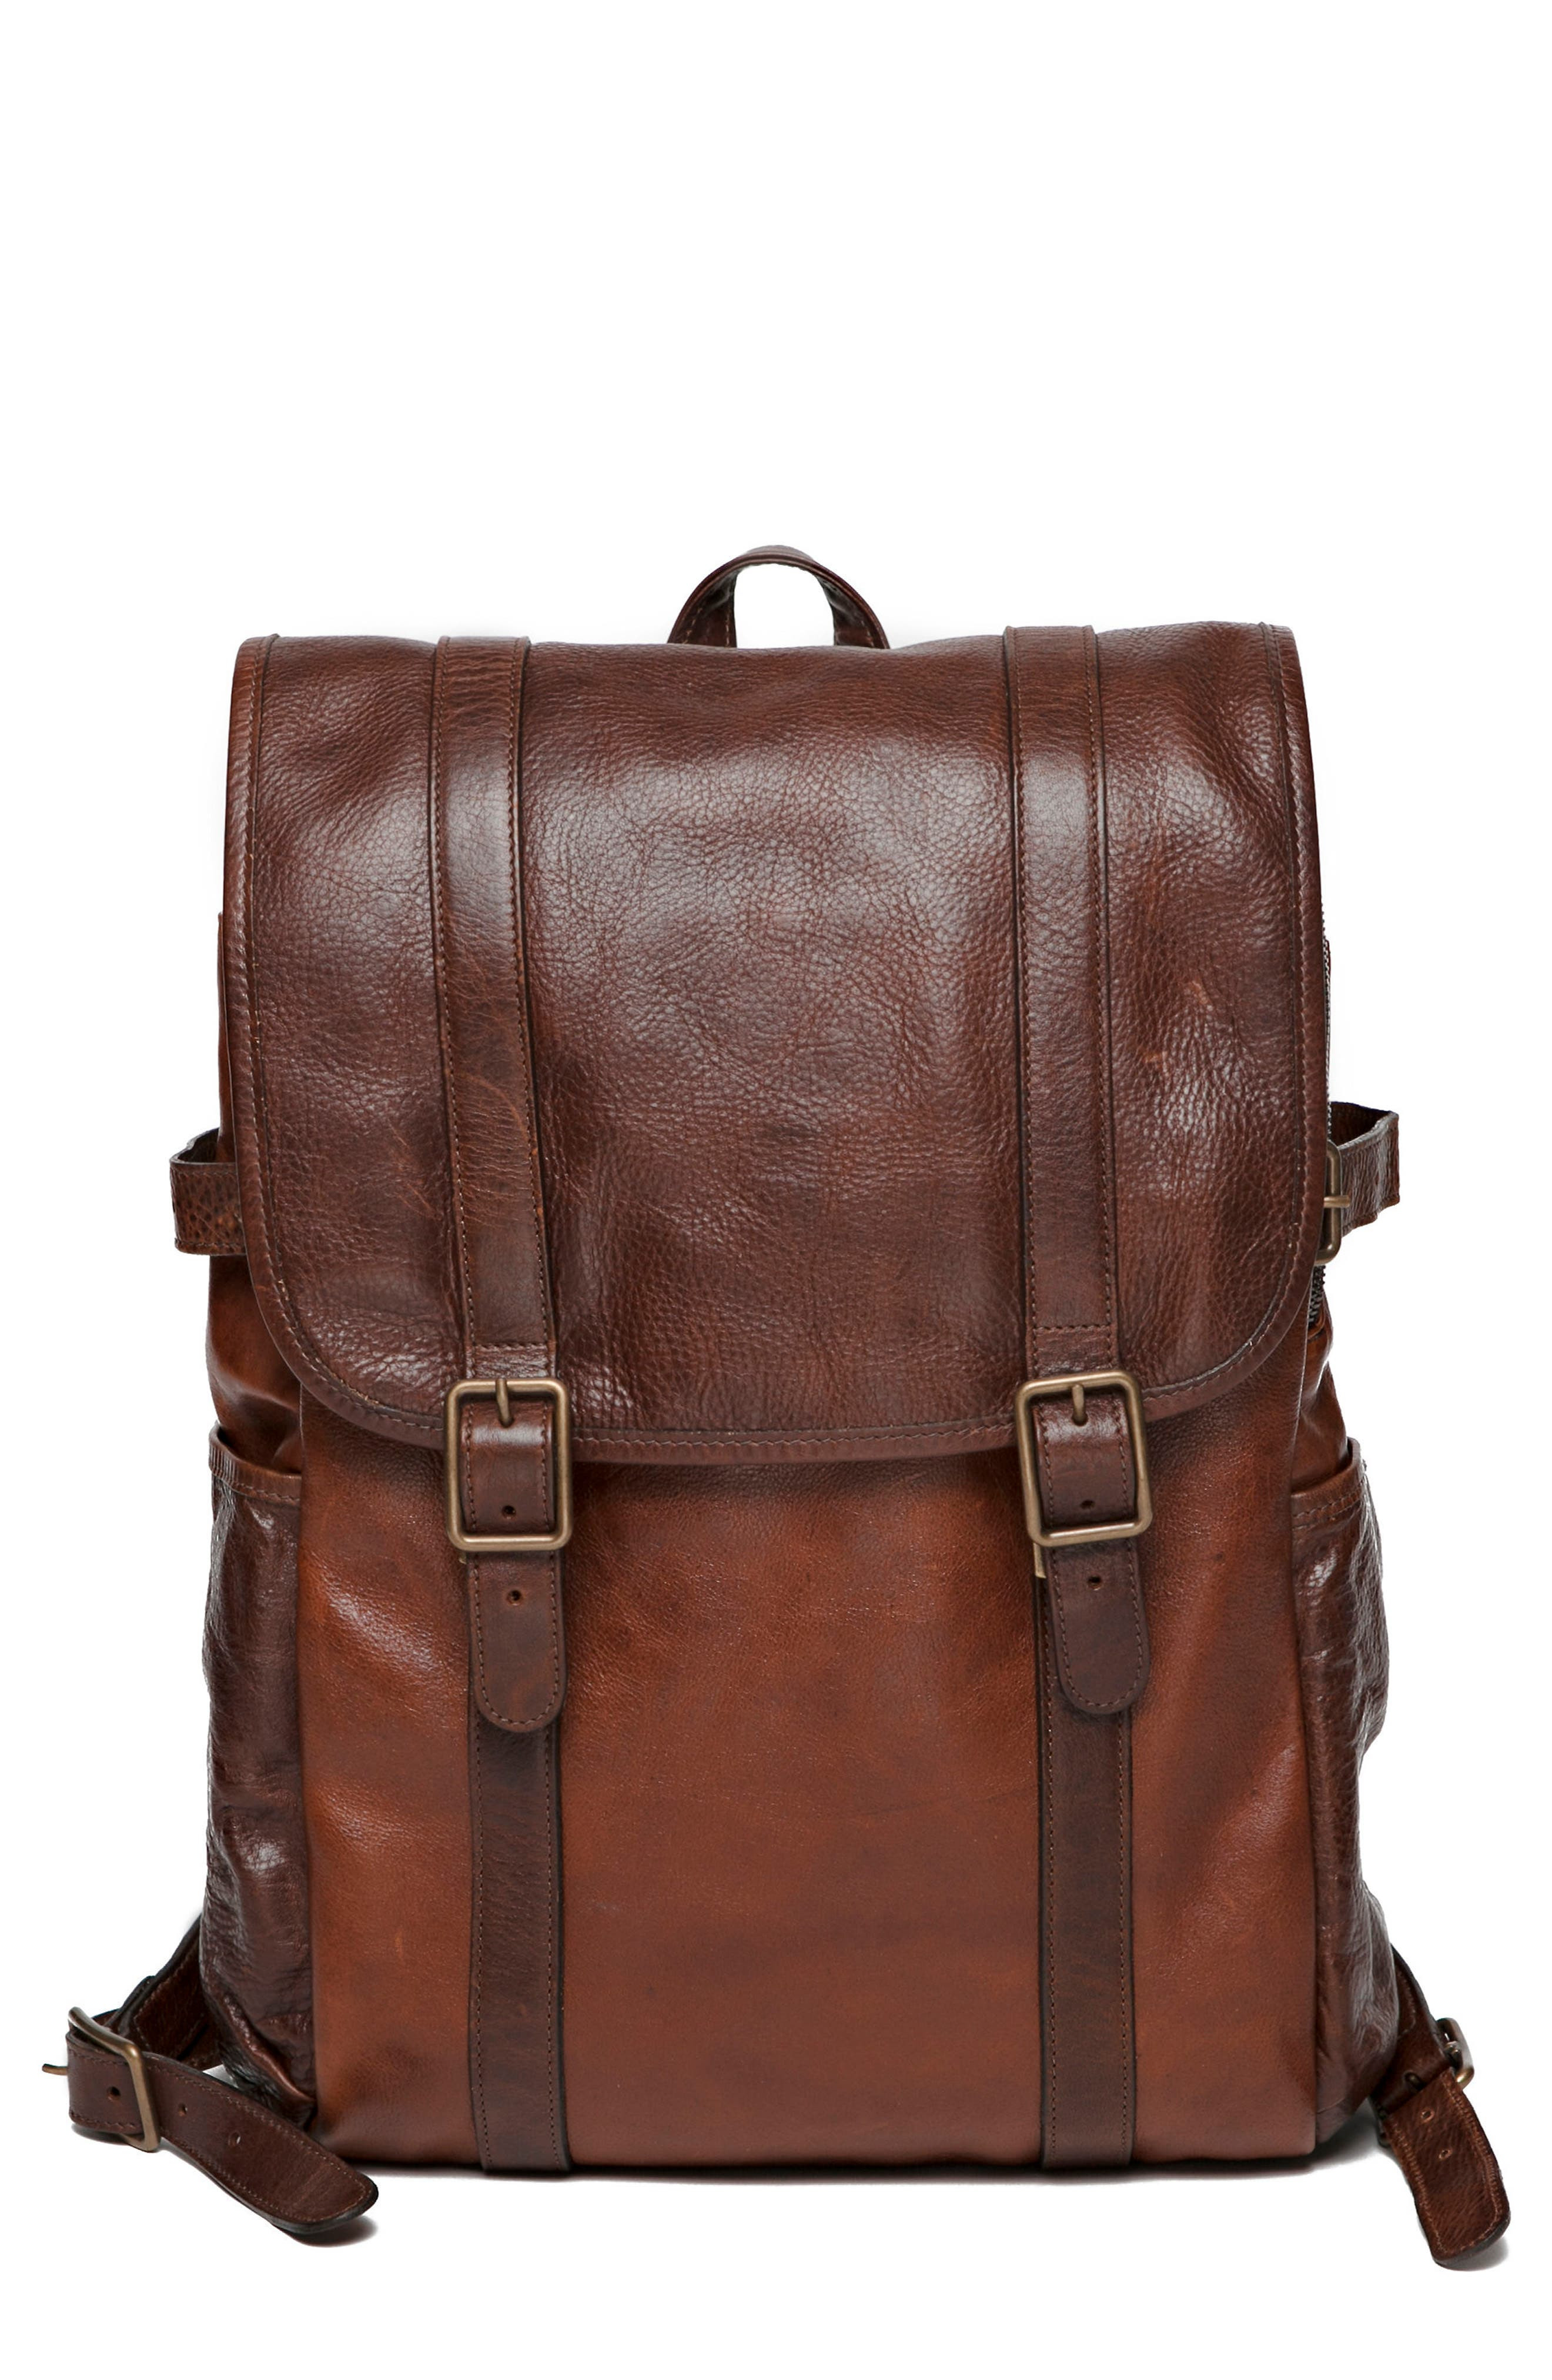 Crews Leather Backpack,                             Main thumbnail 1, color,                             Titan Milled Honey